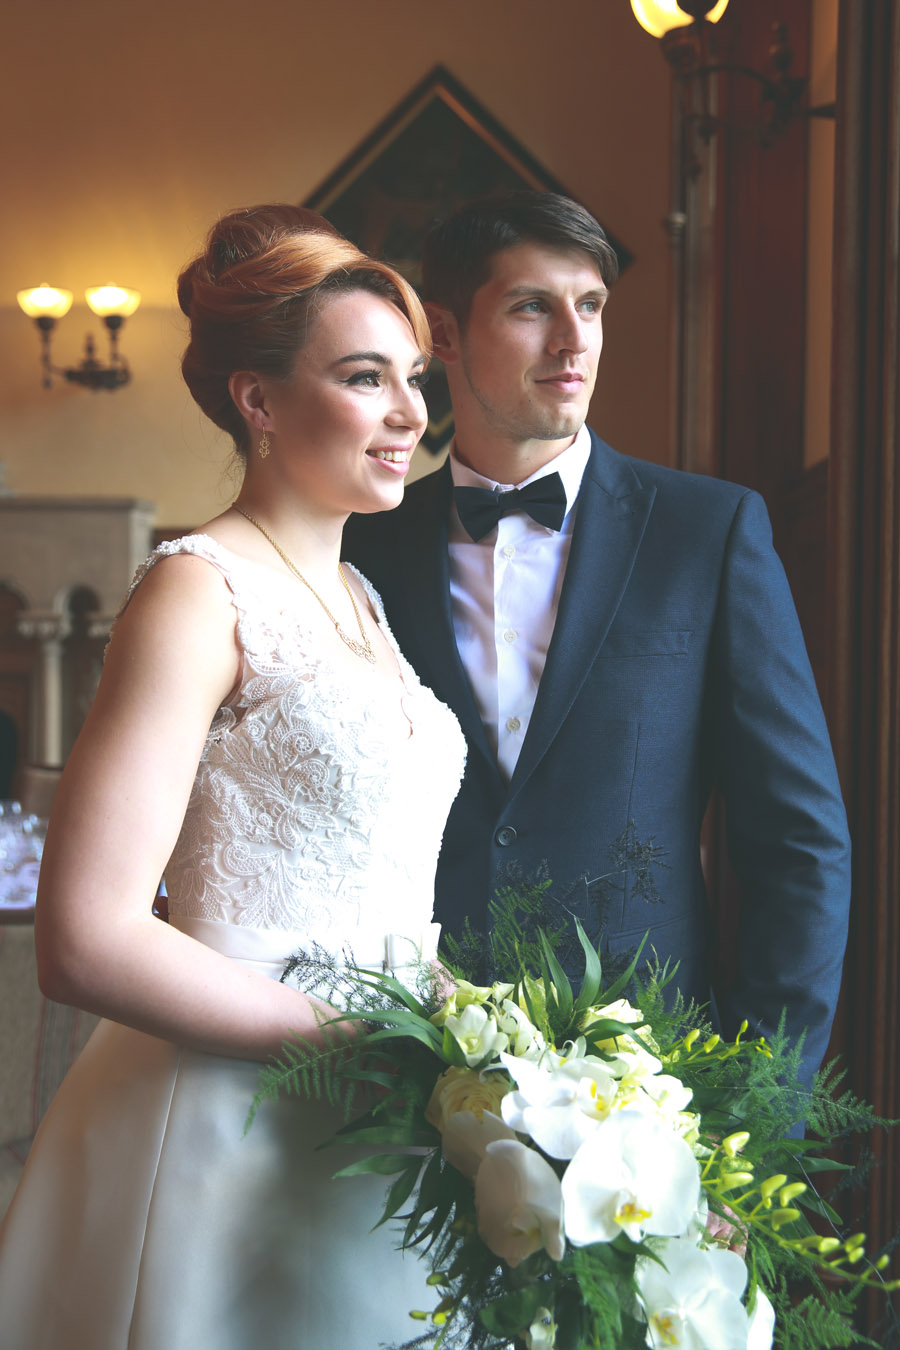 Classic couture wedding styling at the Elvetham, image credit Nicola Rowley Photography (9)